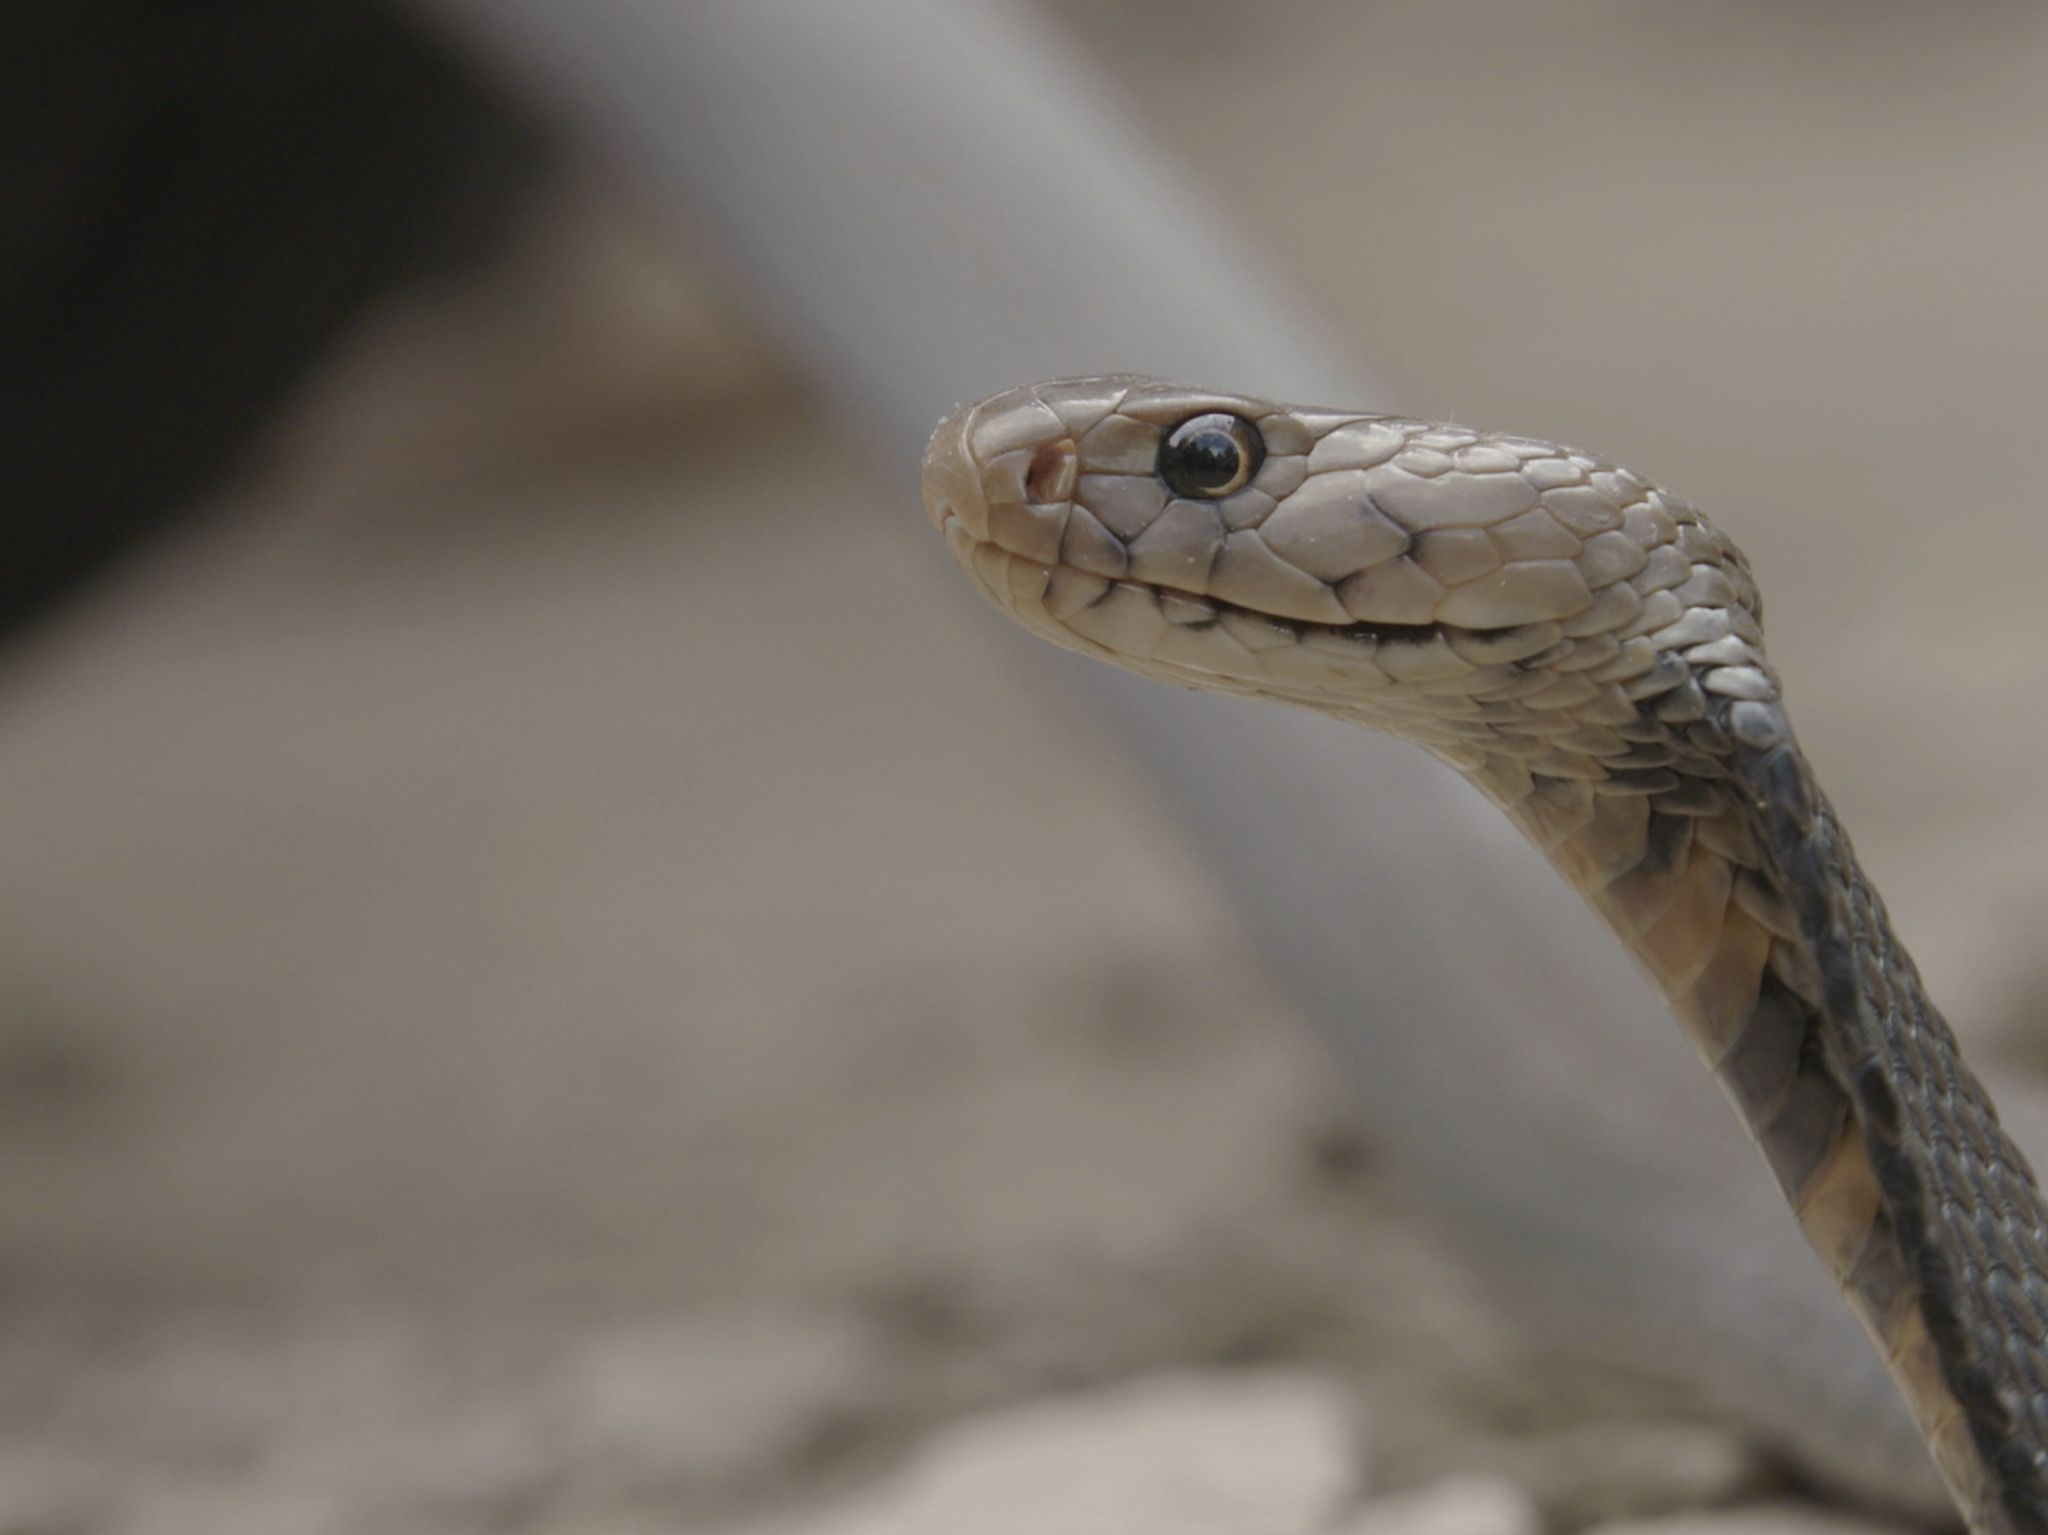 A Mozambique spitting cobra (Naja mossambica). This image is from Snake City. [Photo of the day - January 2021]